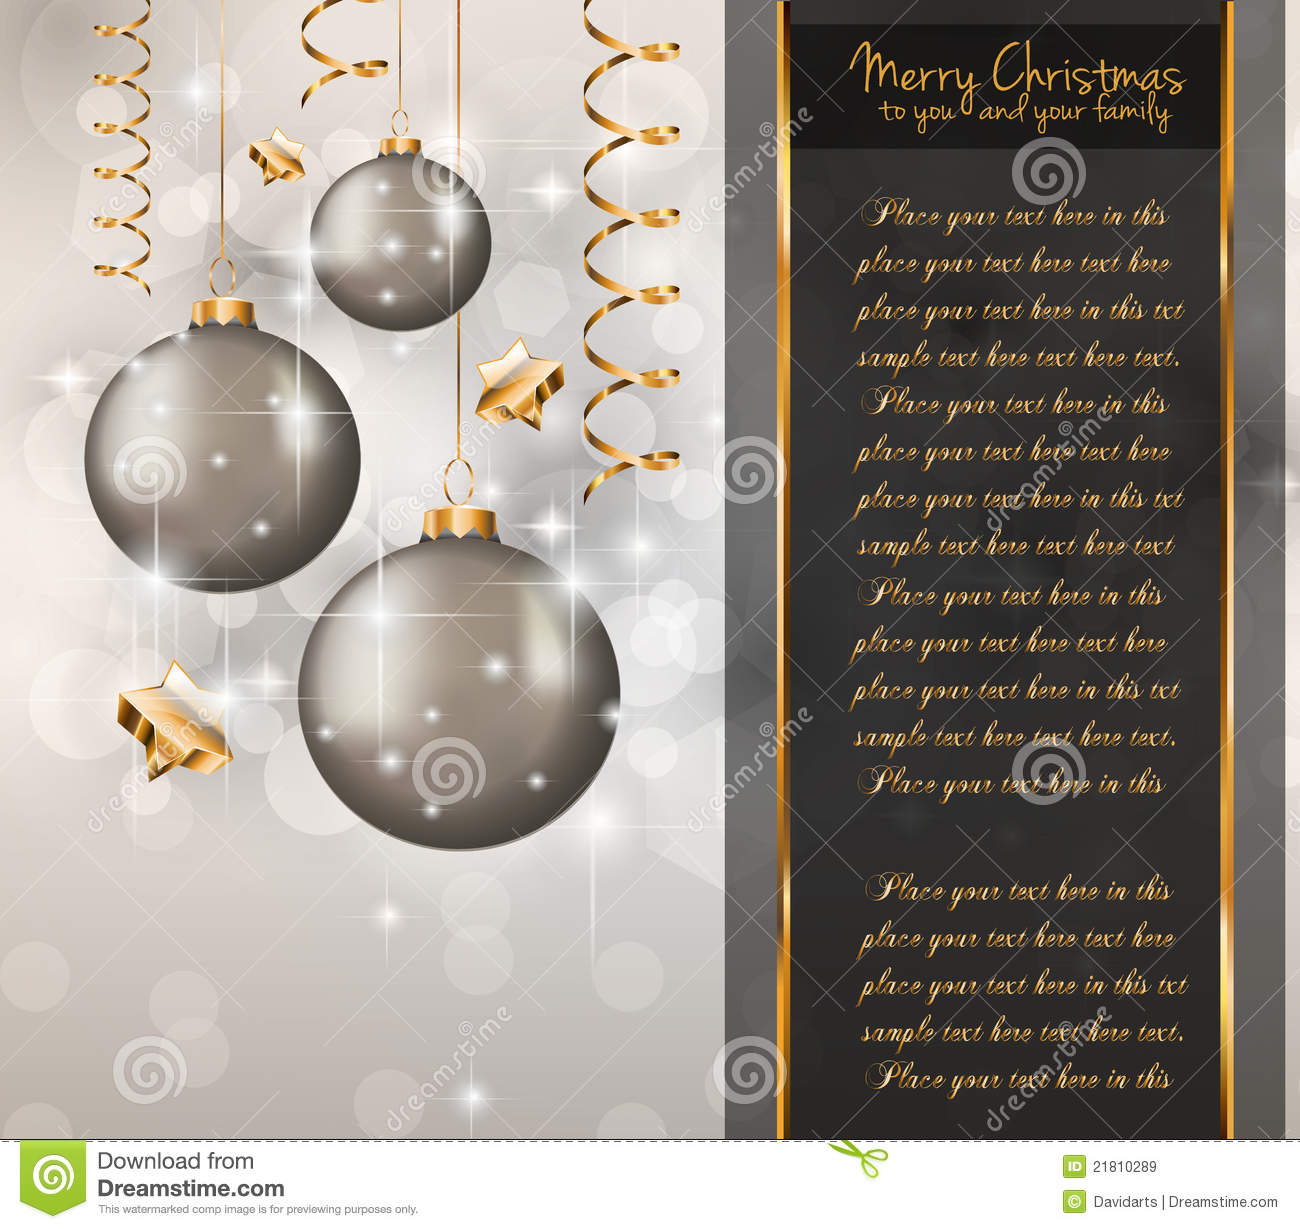 Elegant Classic Christmas Greetings Stock Vector Image